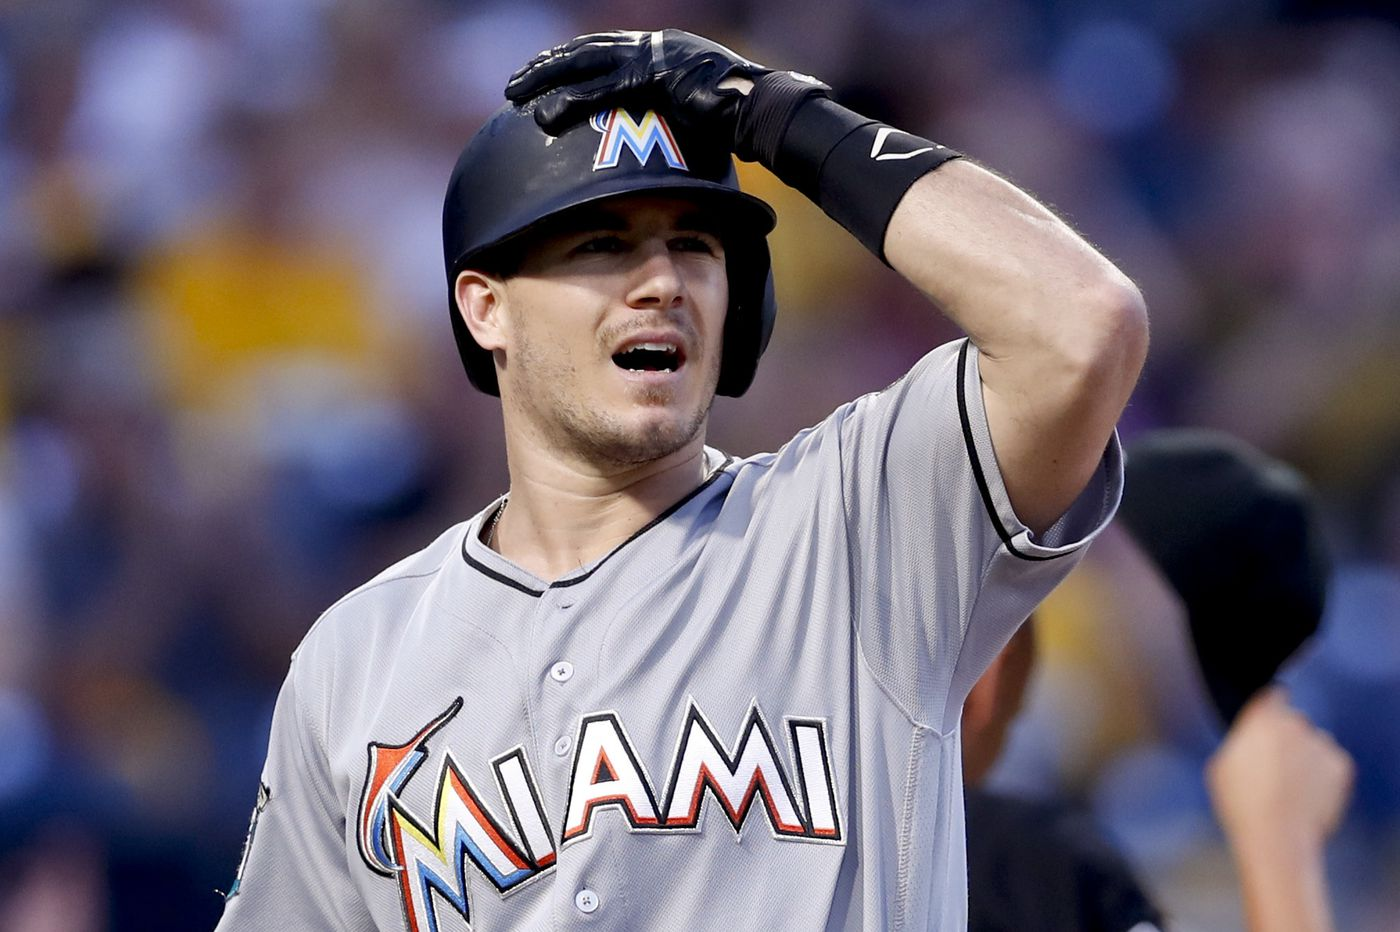 Phillies acquire catcher J.T. Realmuto from Marlins